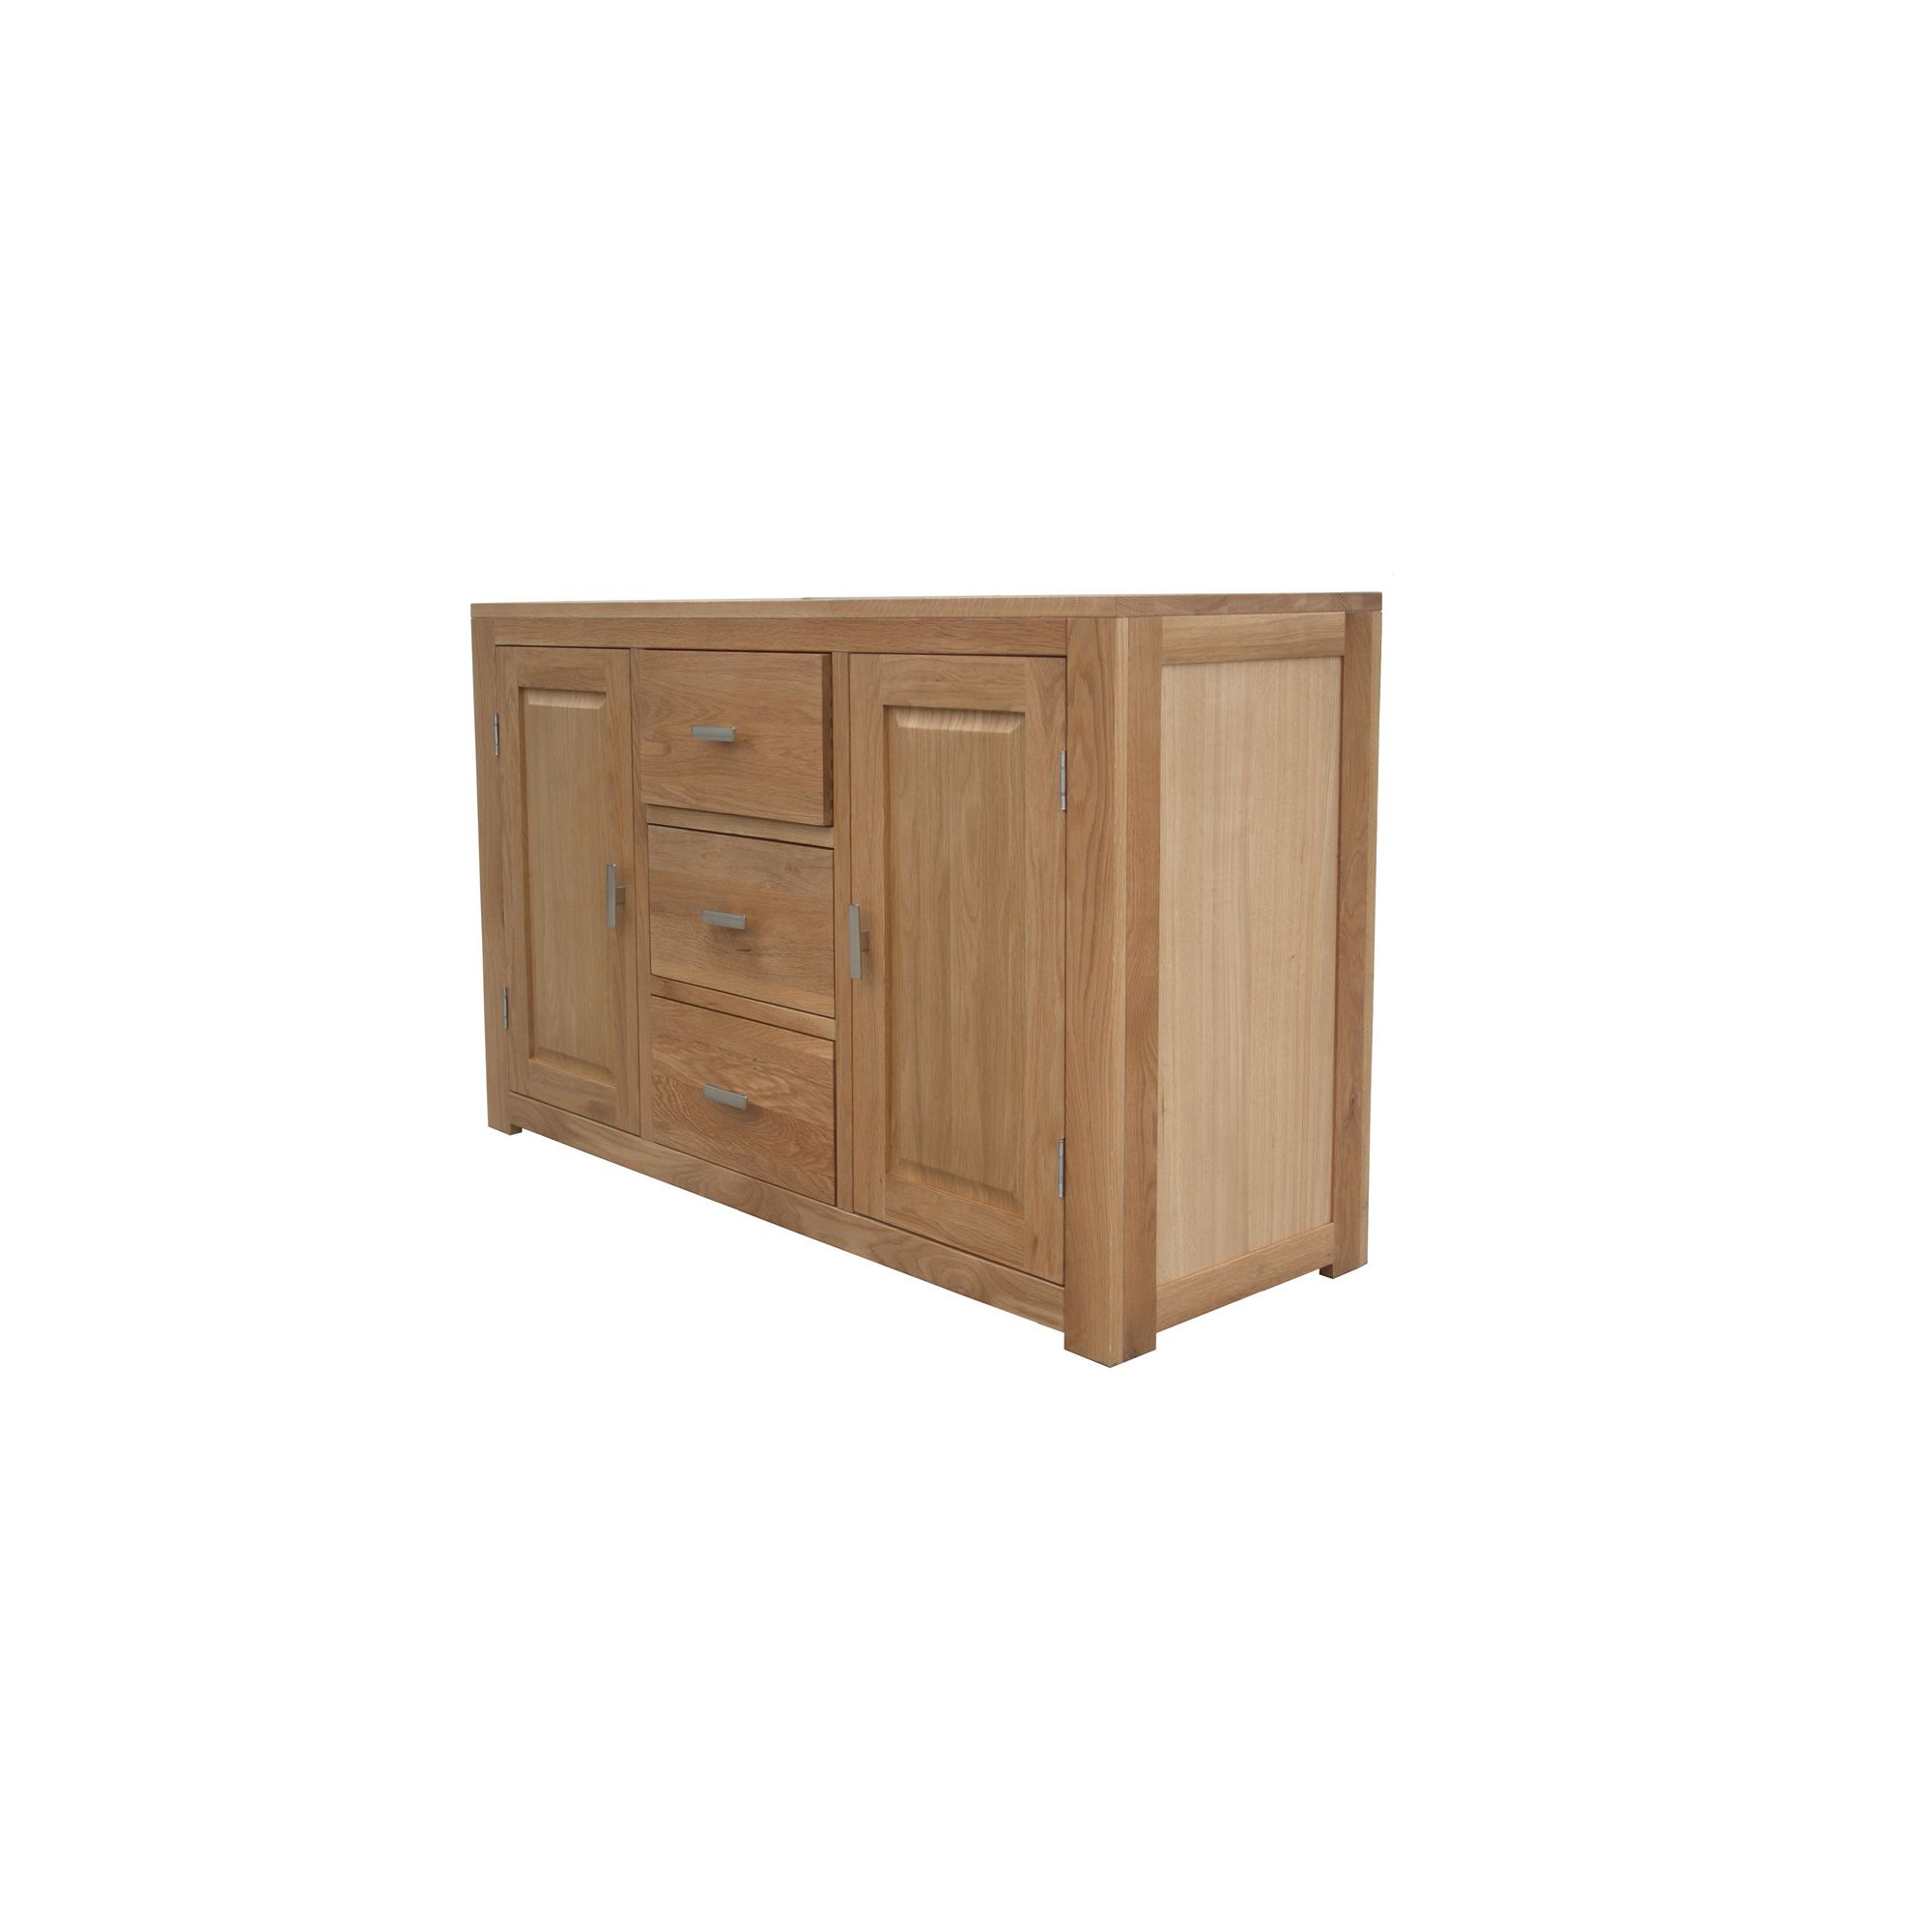 Home Zone Furniture Churchill Oak 2010 Three Drawer Sideboard in Natural Oak at Tesco Direct